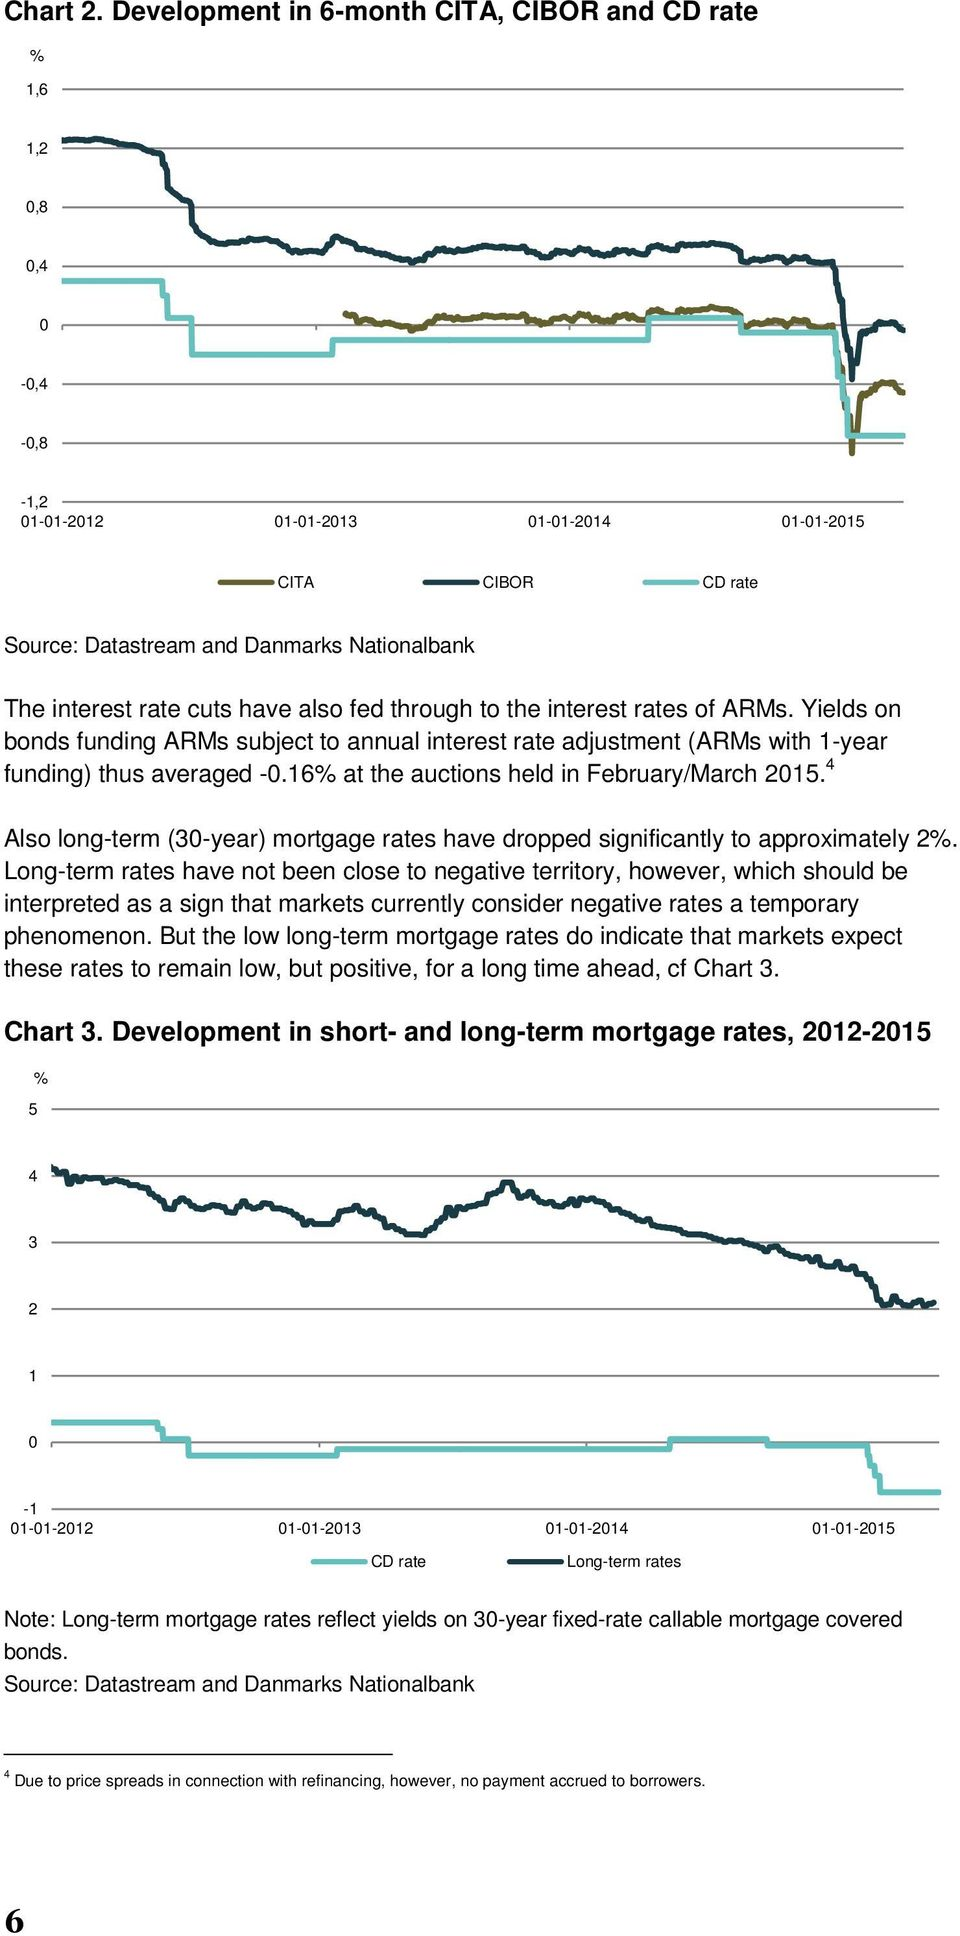 rate cuts have also fed through to the interest rates of ARMs. Yields on bonds funding ARMs subject to annual interest rate adjustment (ARMs with 1-year funding) thus averaged -0.